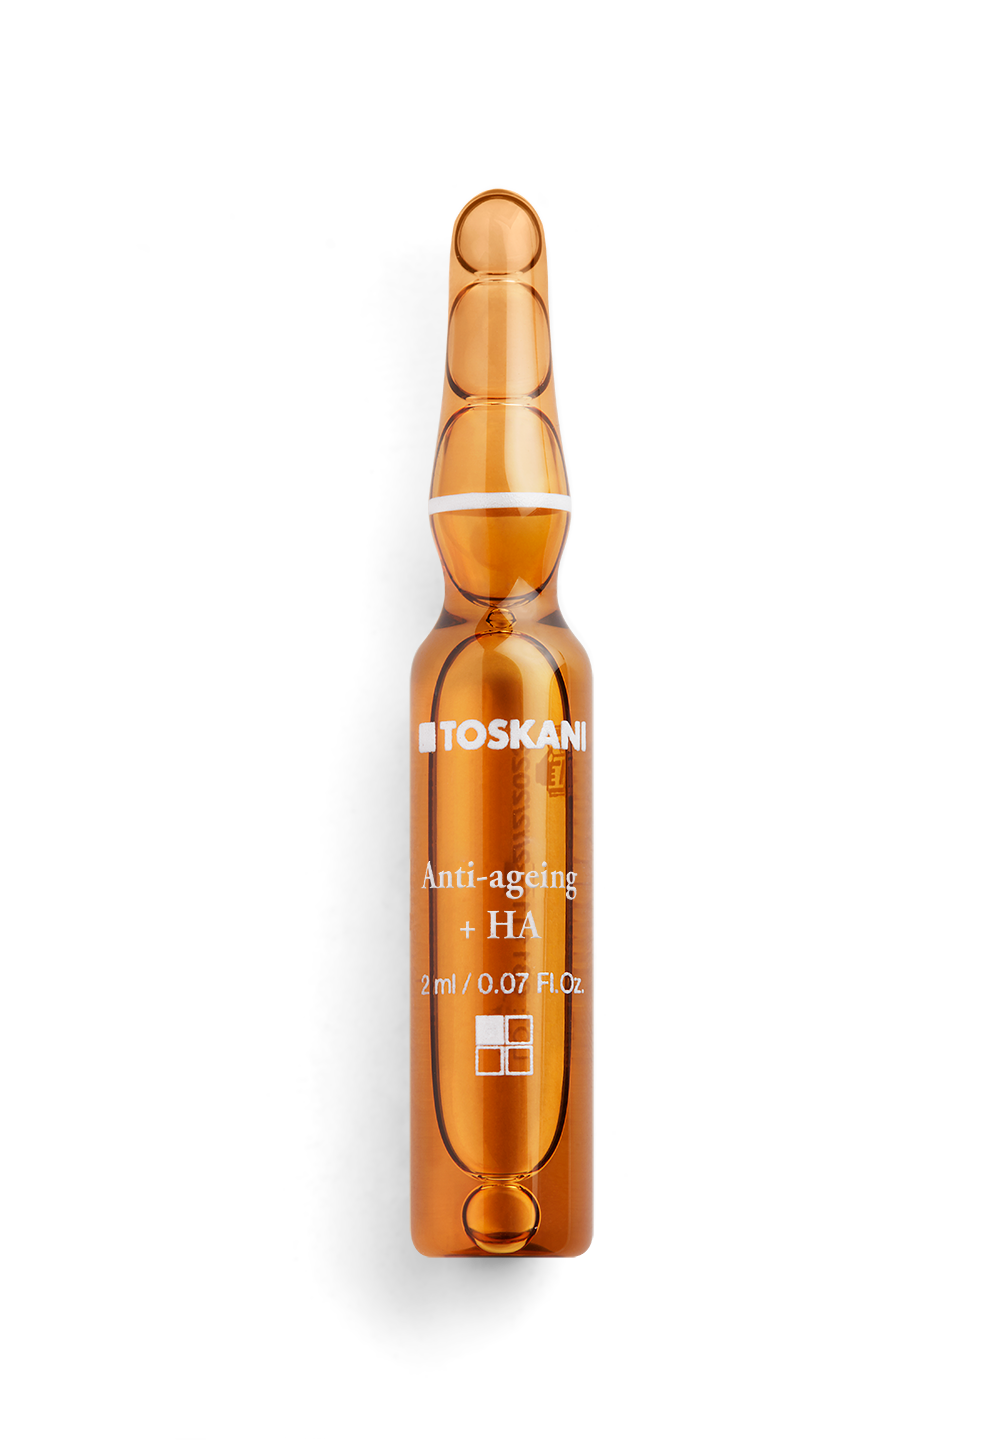 antiageing_ampoule_toskani